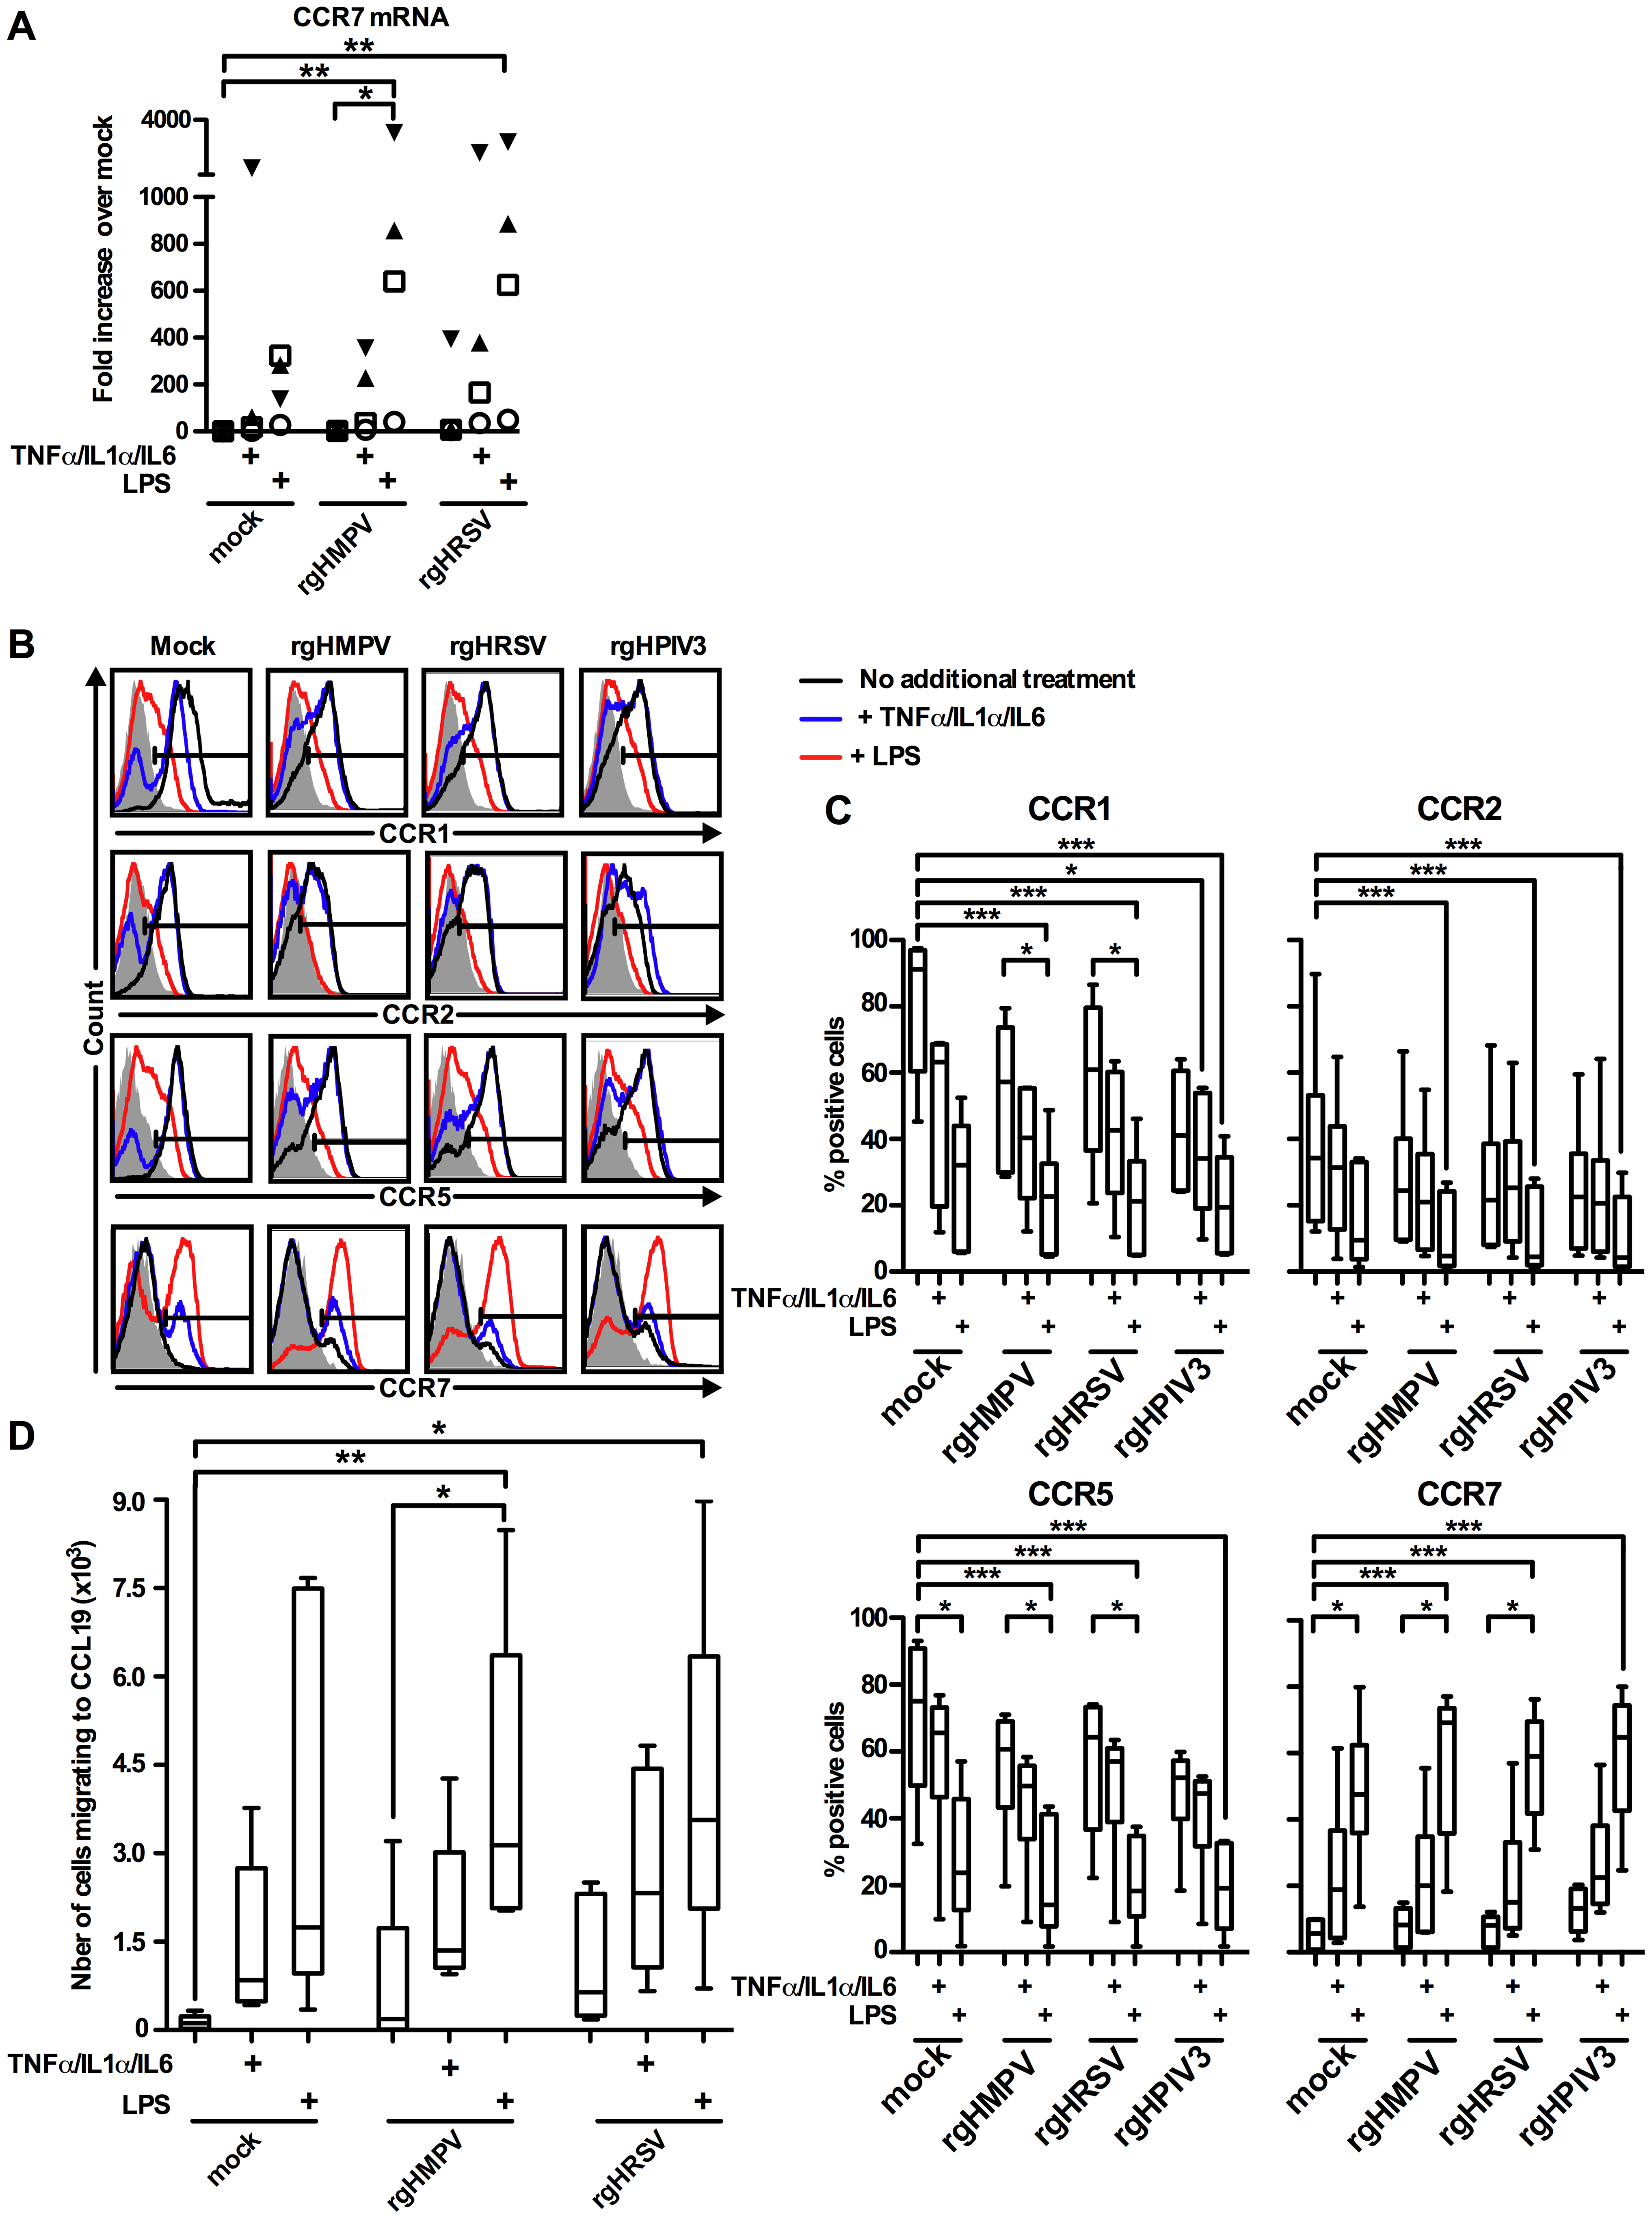 A cocktail of pro-inflammatory cytokines TNF-α/IL-1α/IL-6 partly restores the CCR7-driven migration of rgHMPV- or rgHRSV-stimulated MDDC.